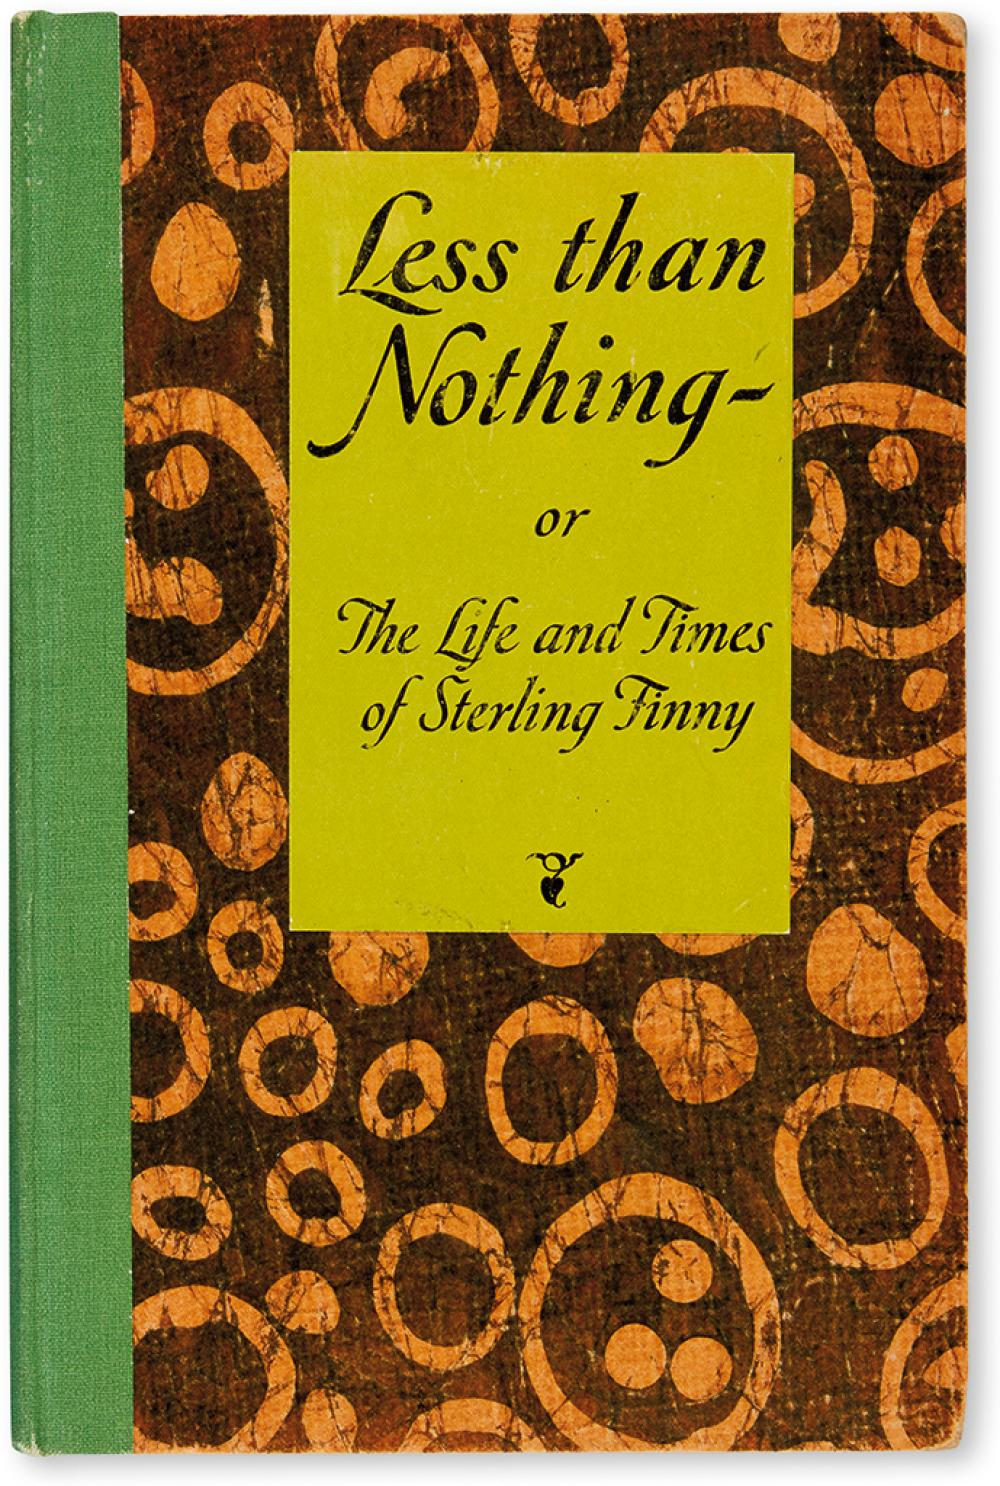 [WHITE, E.B.] [Hanrahan, John] (contrib.). Less Than Nothing - or The Life and Times of Sterling Finny.